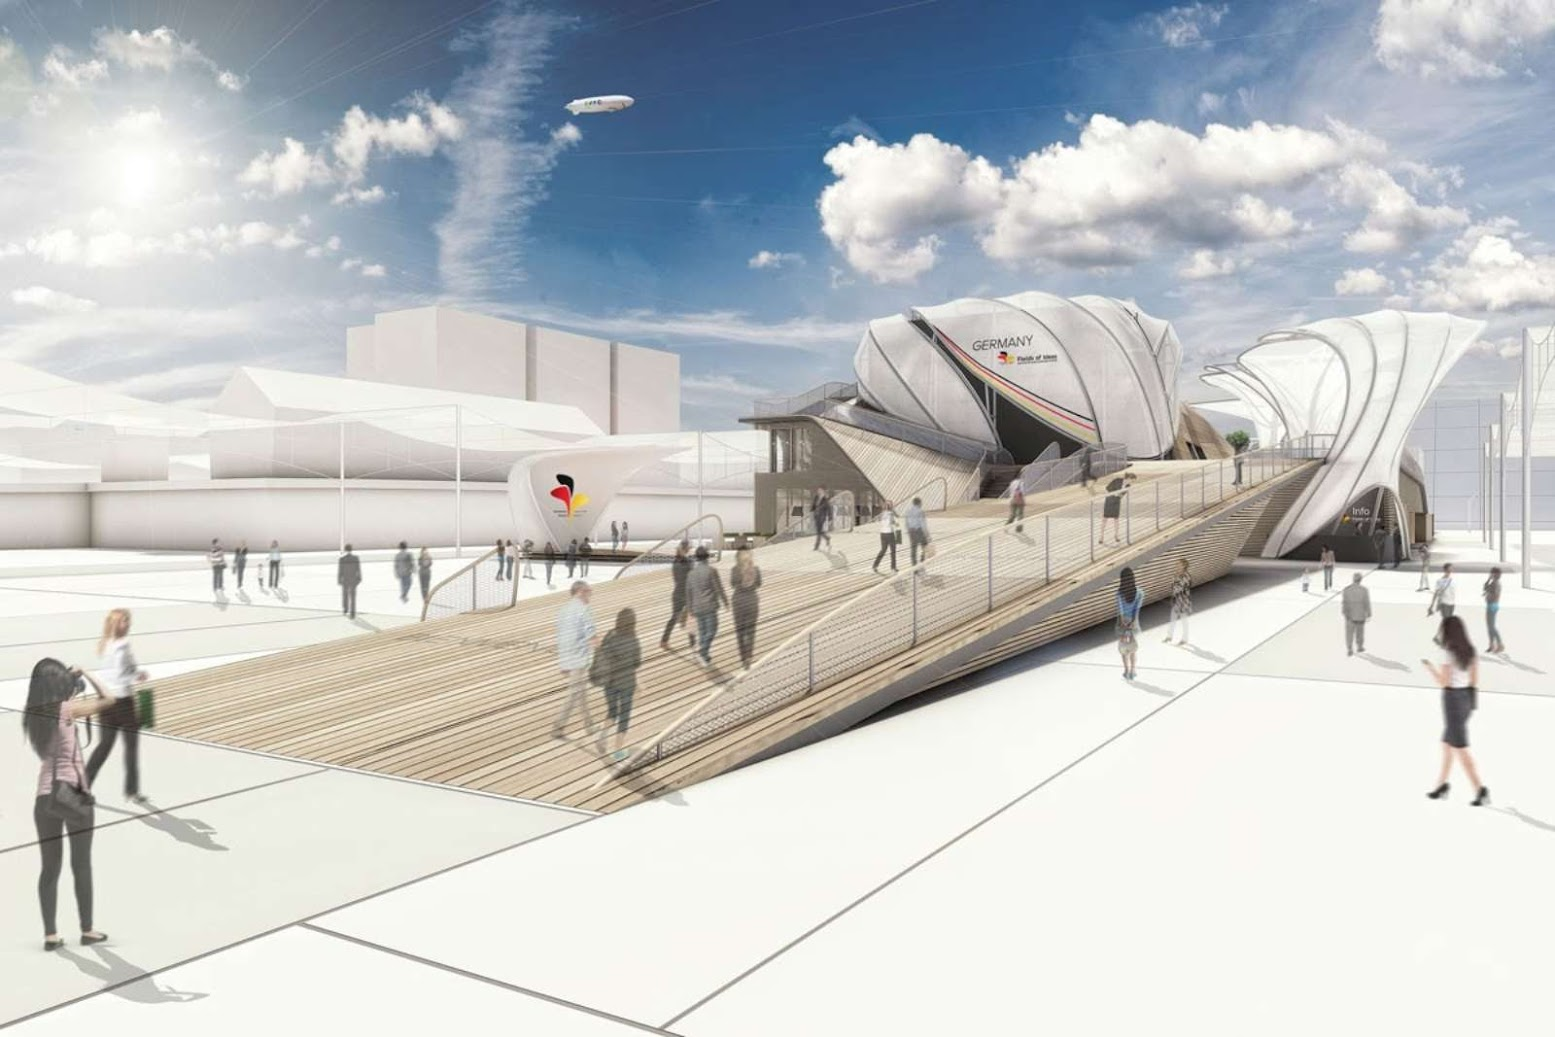 Milano, Italia: [GERMAN PAVILLON FOR EXPO MILANO 2015 BY SCHMIDHUBER]